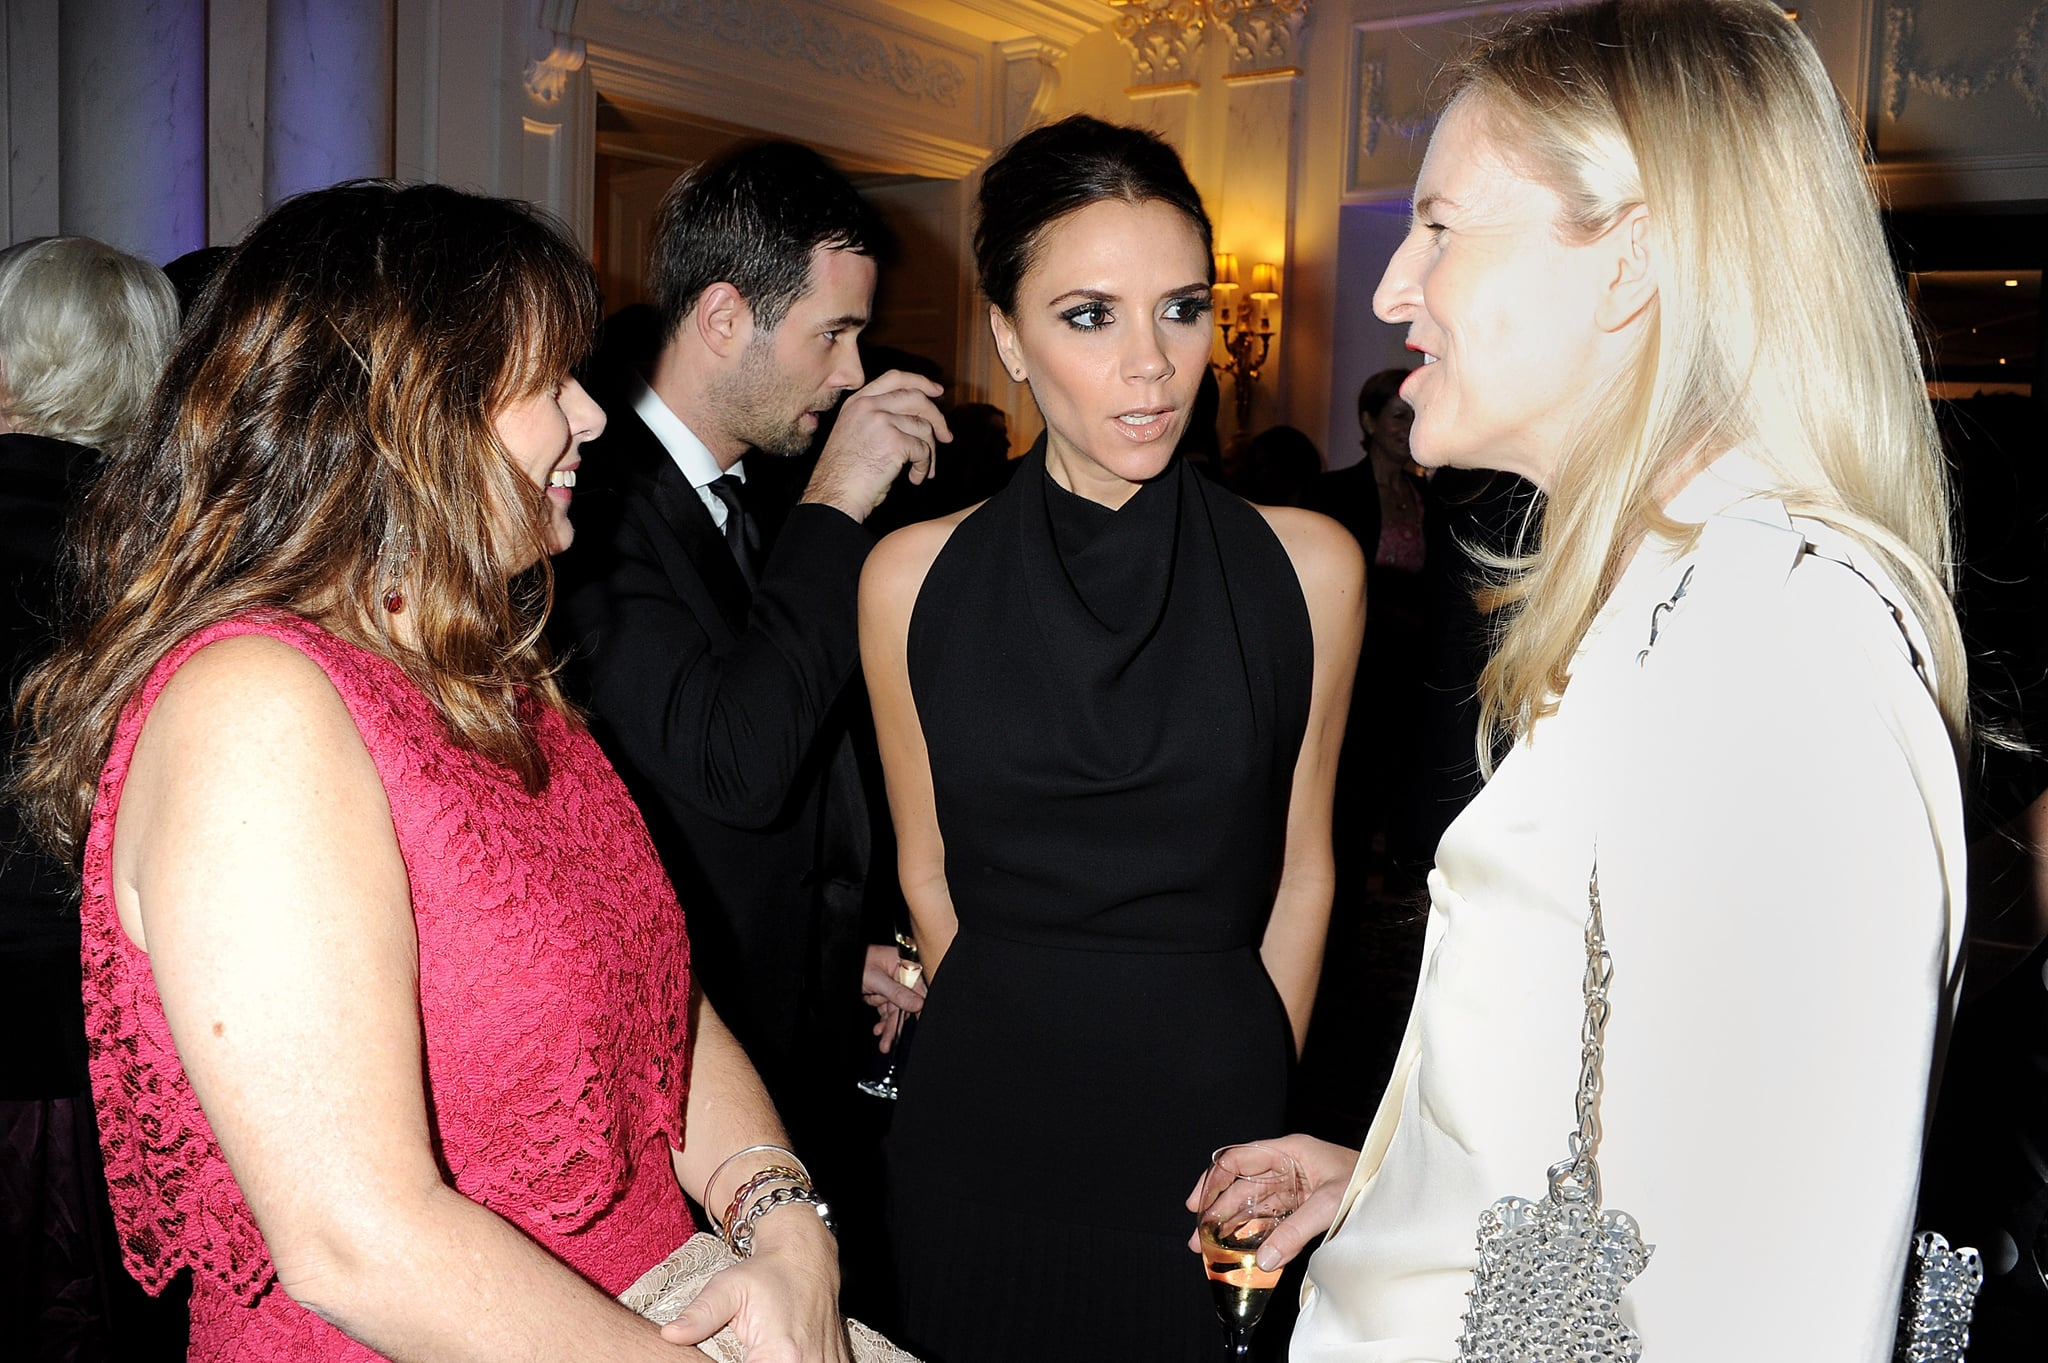 Victoria Beckham and friends